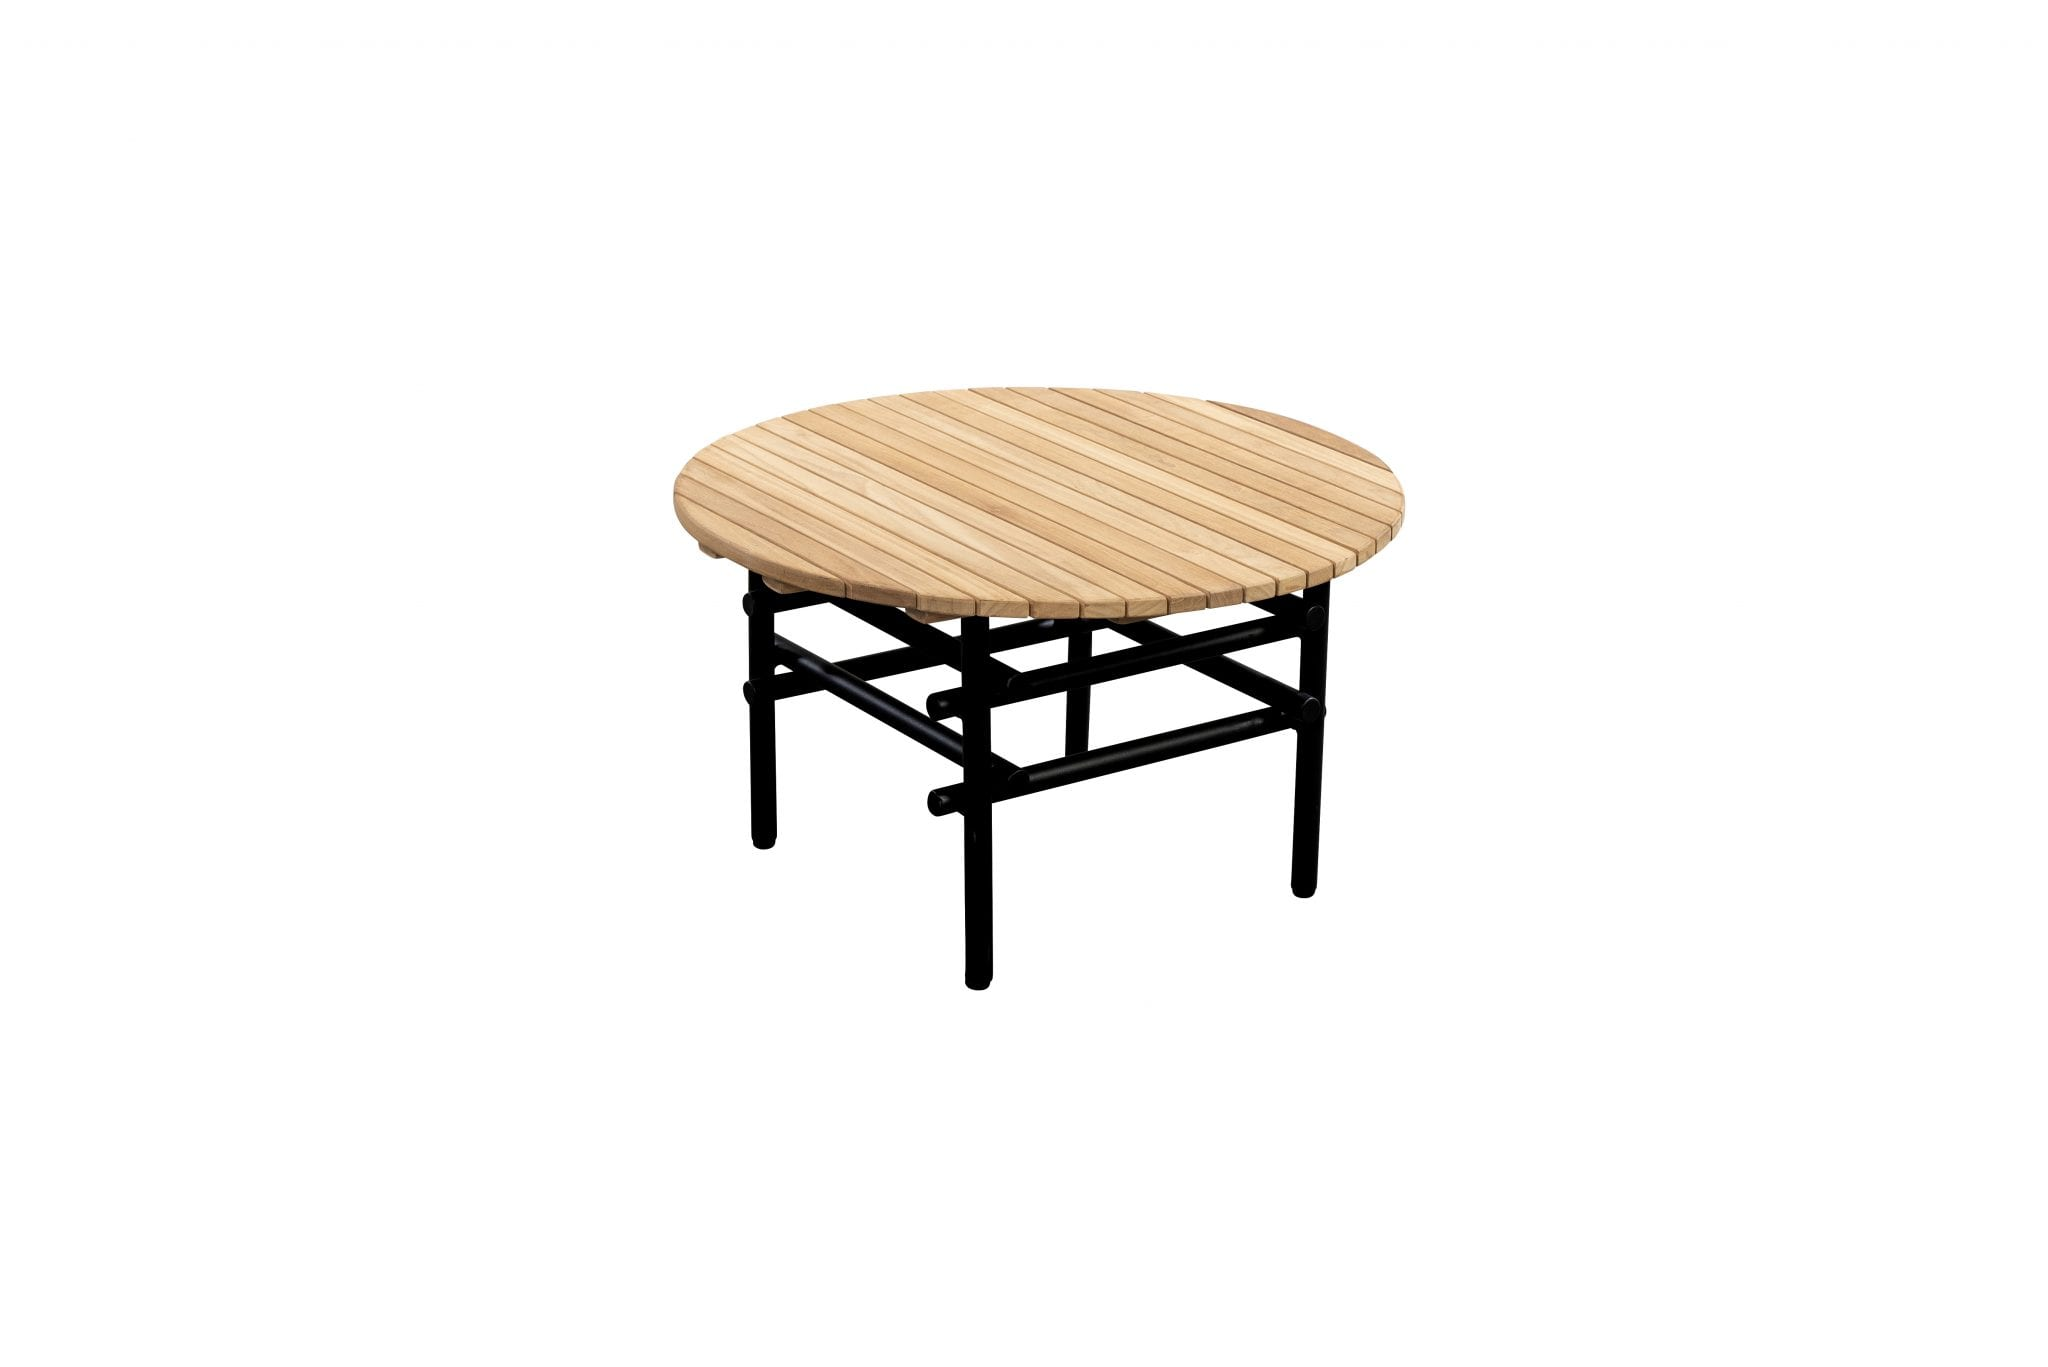 Ki 60 round side table - black | Yoi Furniture